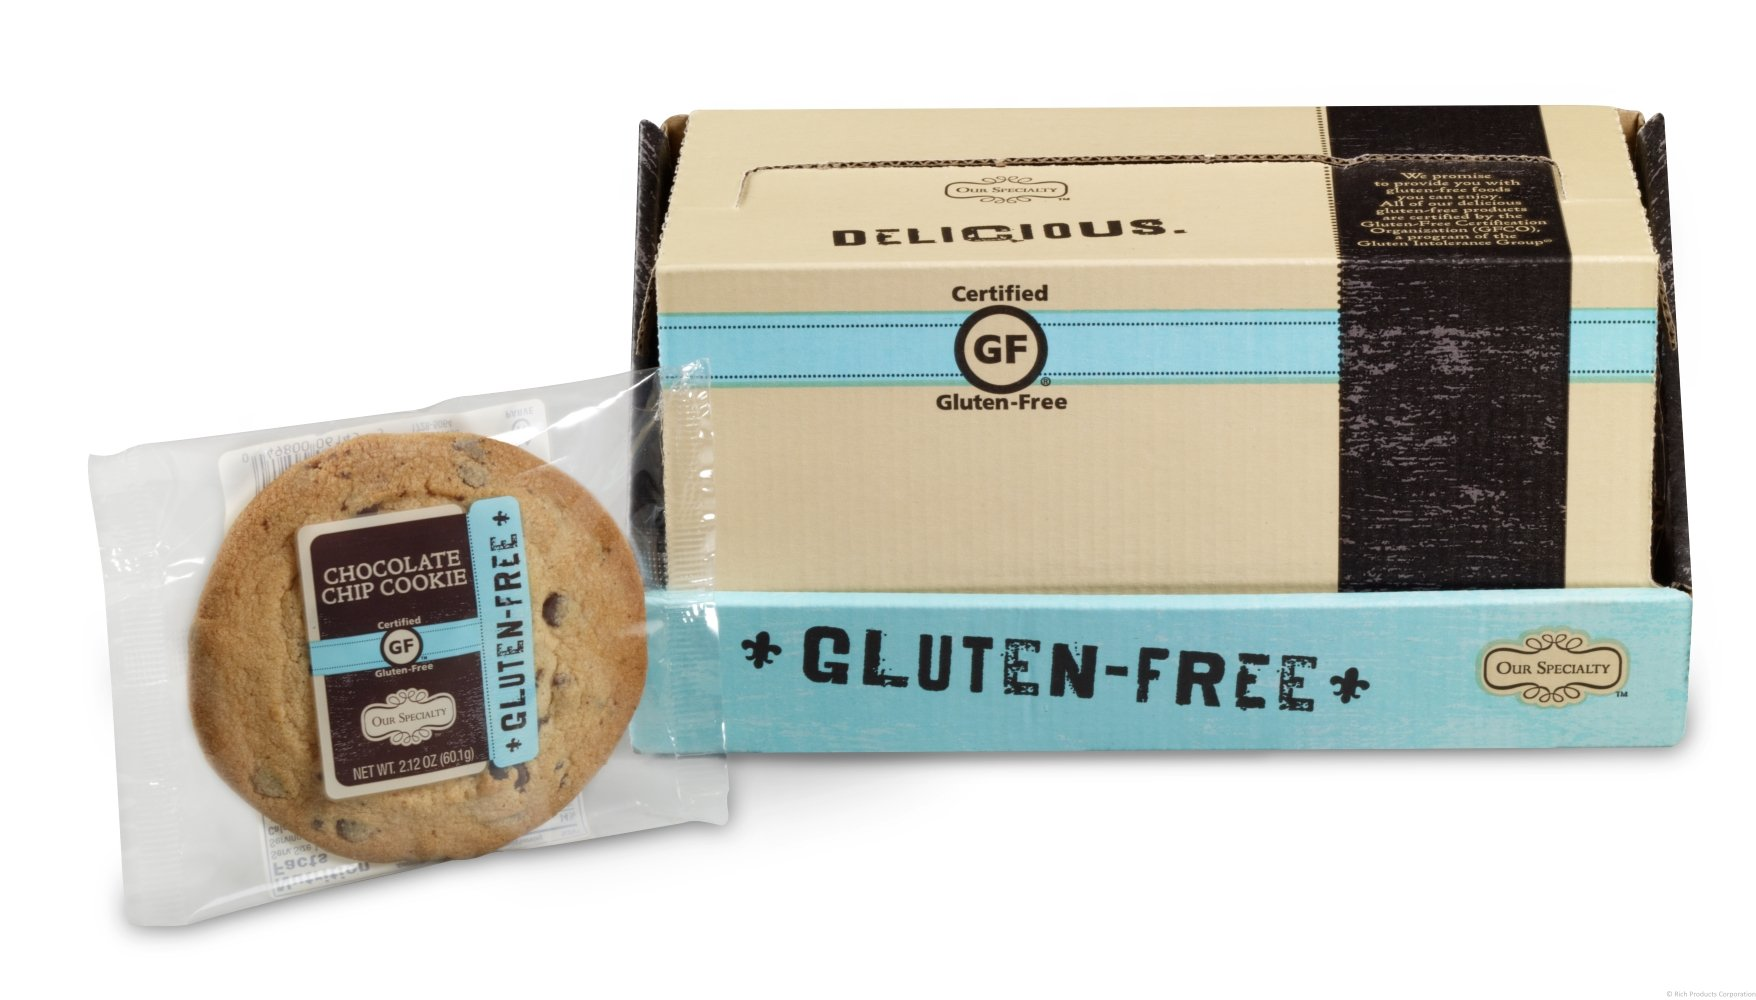 Our Specialty Gluten Free Chocolate Chip Cookies, Individually Wrapped, 12 Pack by Rich's Bakery